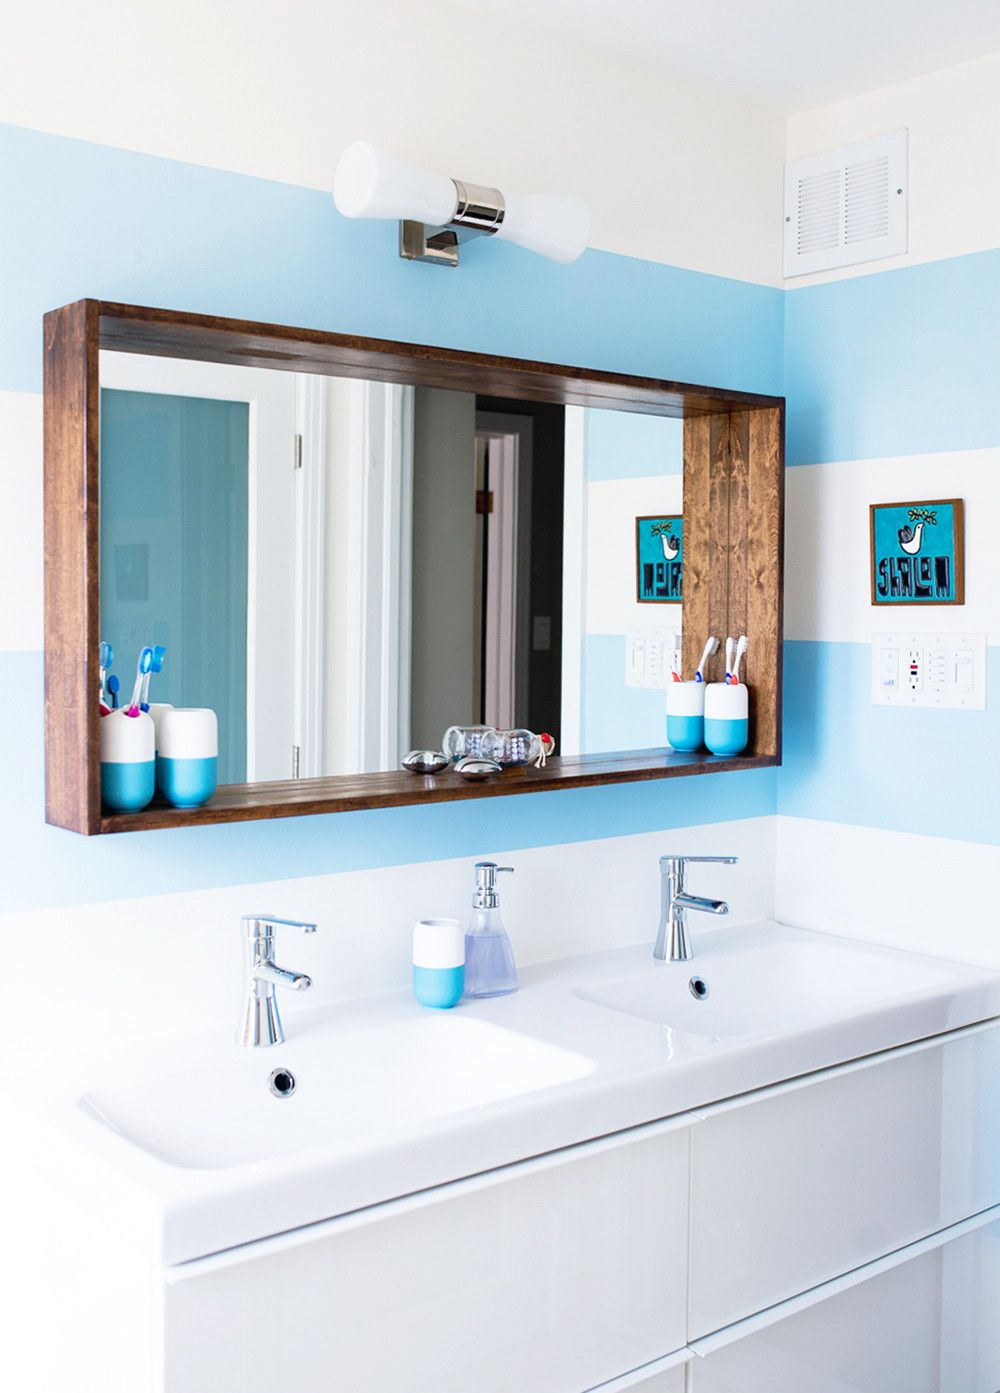 Bathroom Mirror Ideas Are You Searching For Bathroom Mirror Ideas And Inspiration